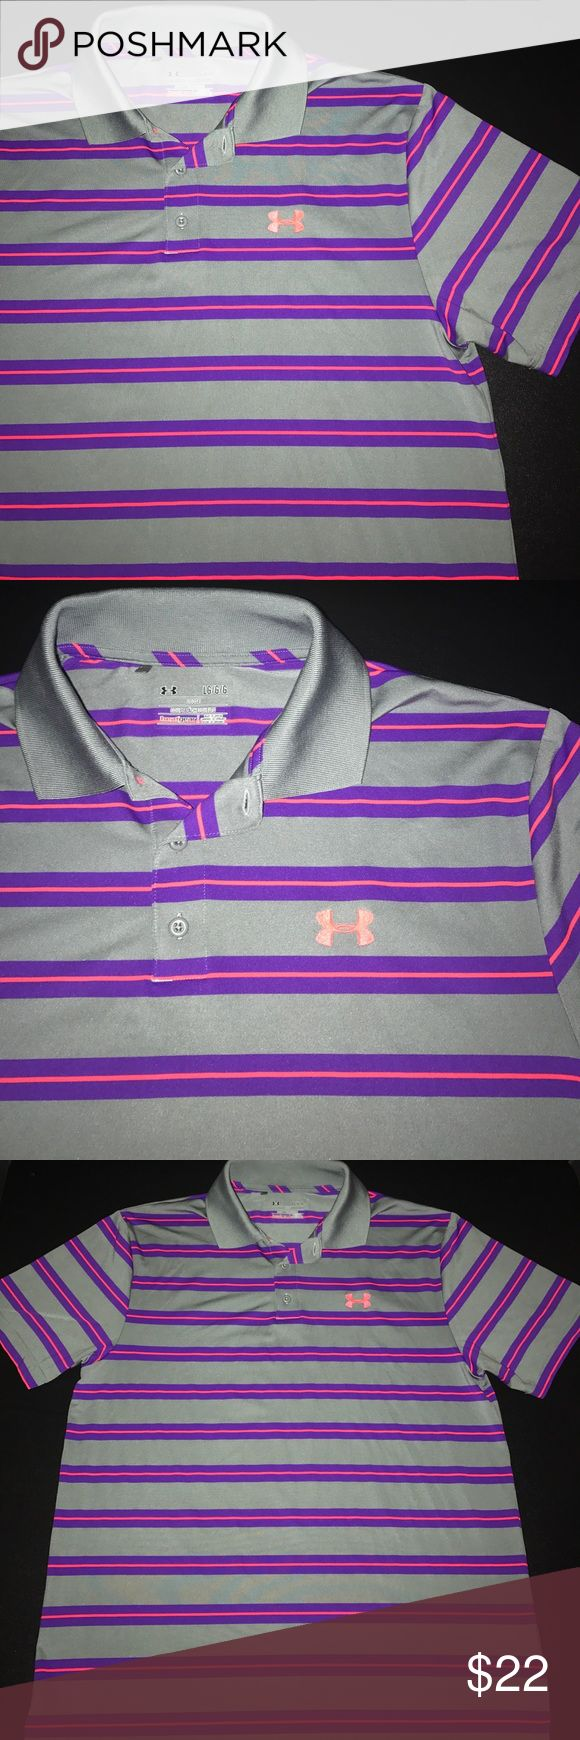 NWOT- Under Armour Men's Heat Gear Loose Fit Polo For sale is a Size Large, NWOT- Under Armour Men's Heat Gear Loose Fit Polo. Polo is gray in color and features purple and fuchsia stripes. A must have for the athlete in your family which can be worn for both sport and evening activity! Under Armour Shirts Polos